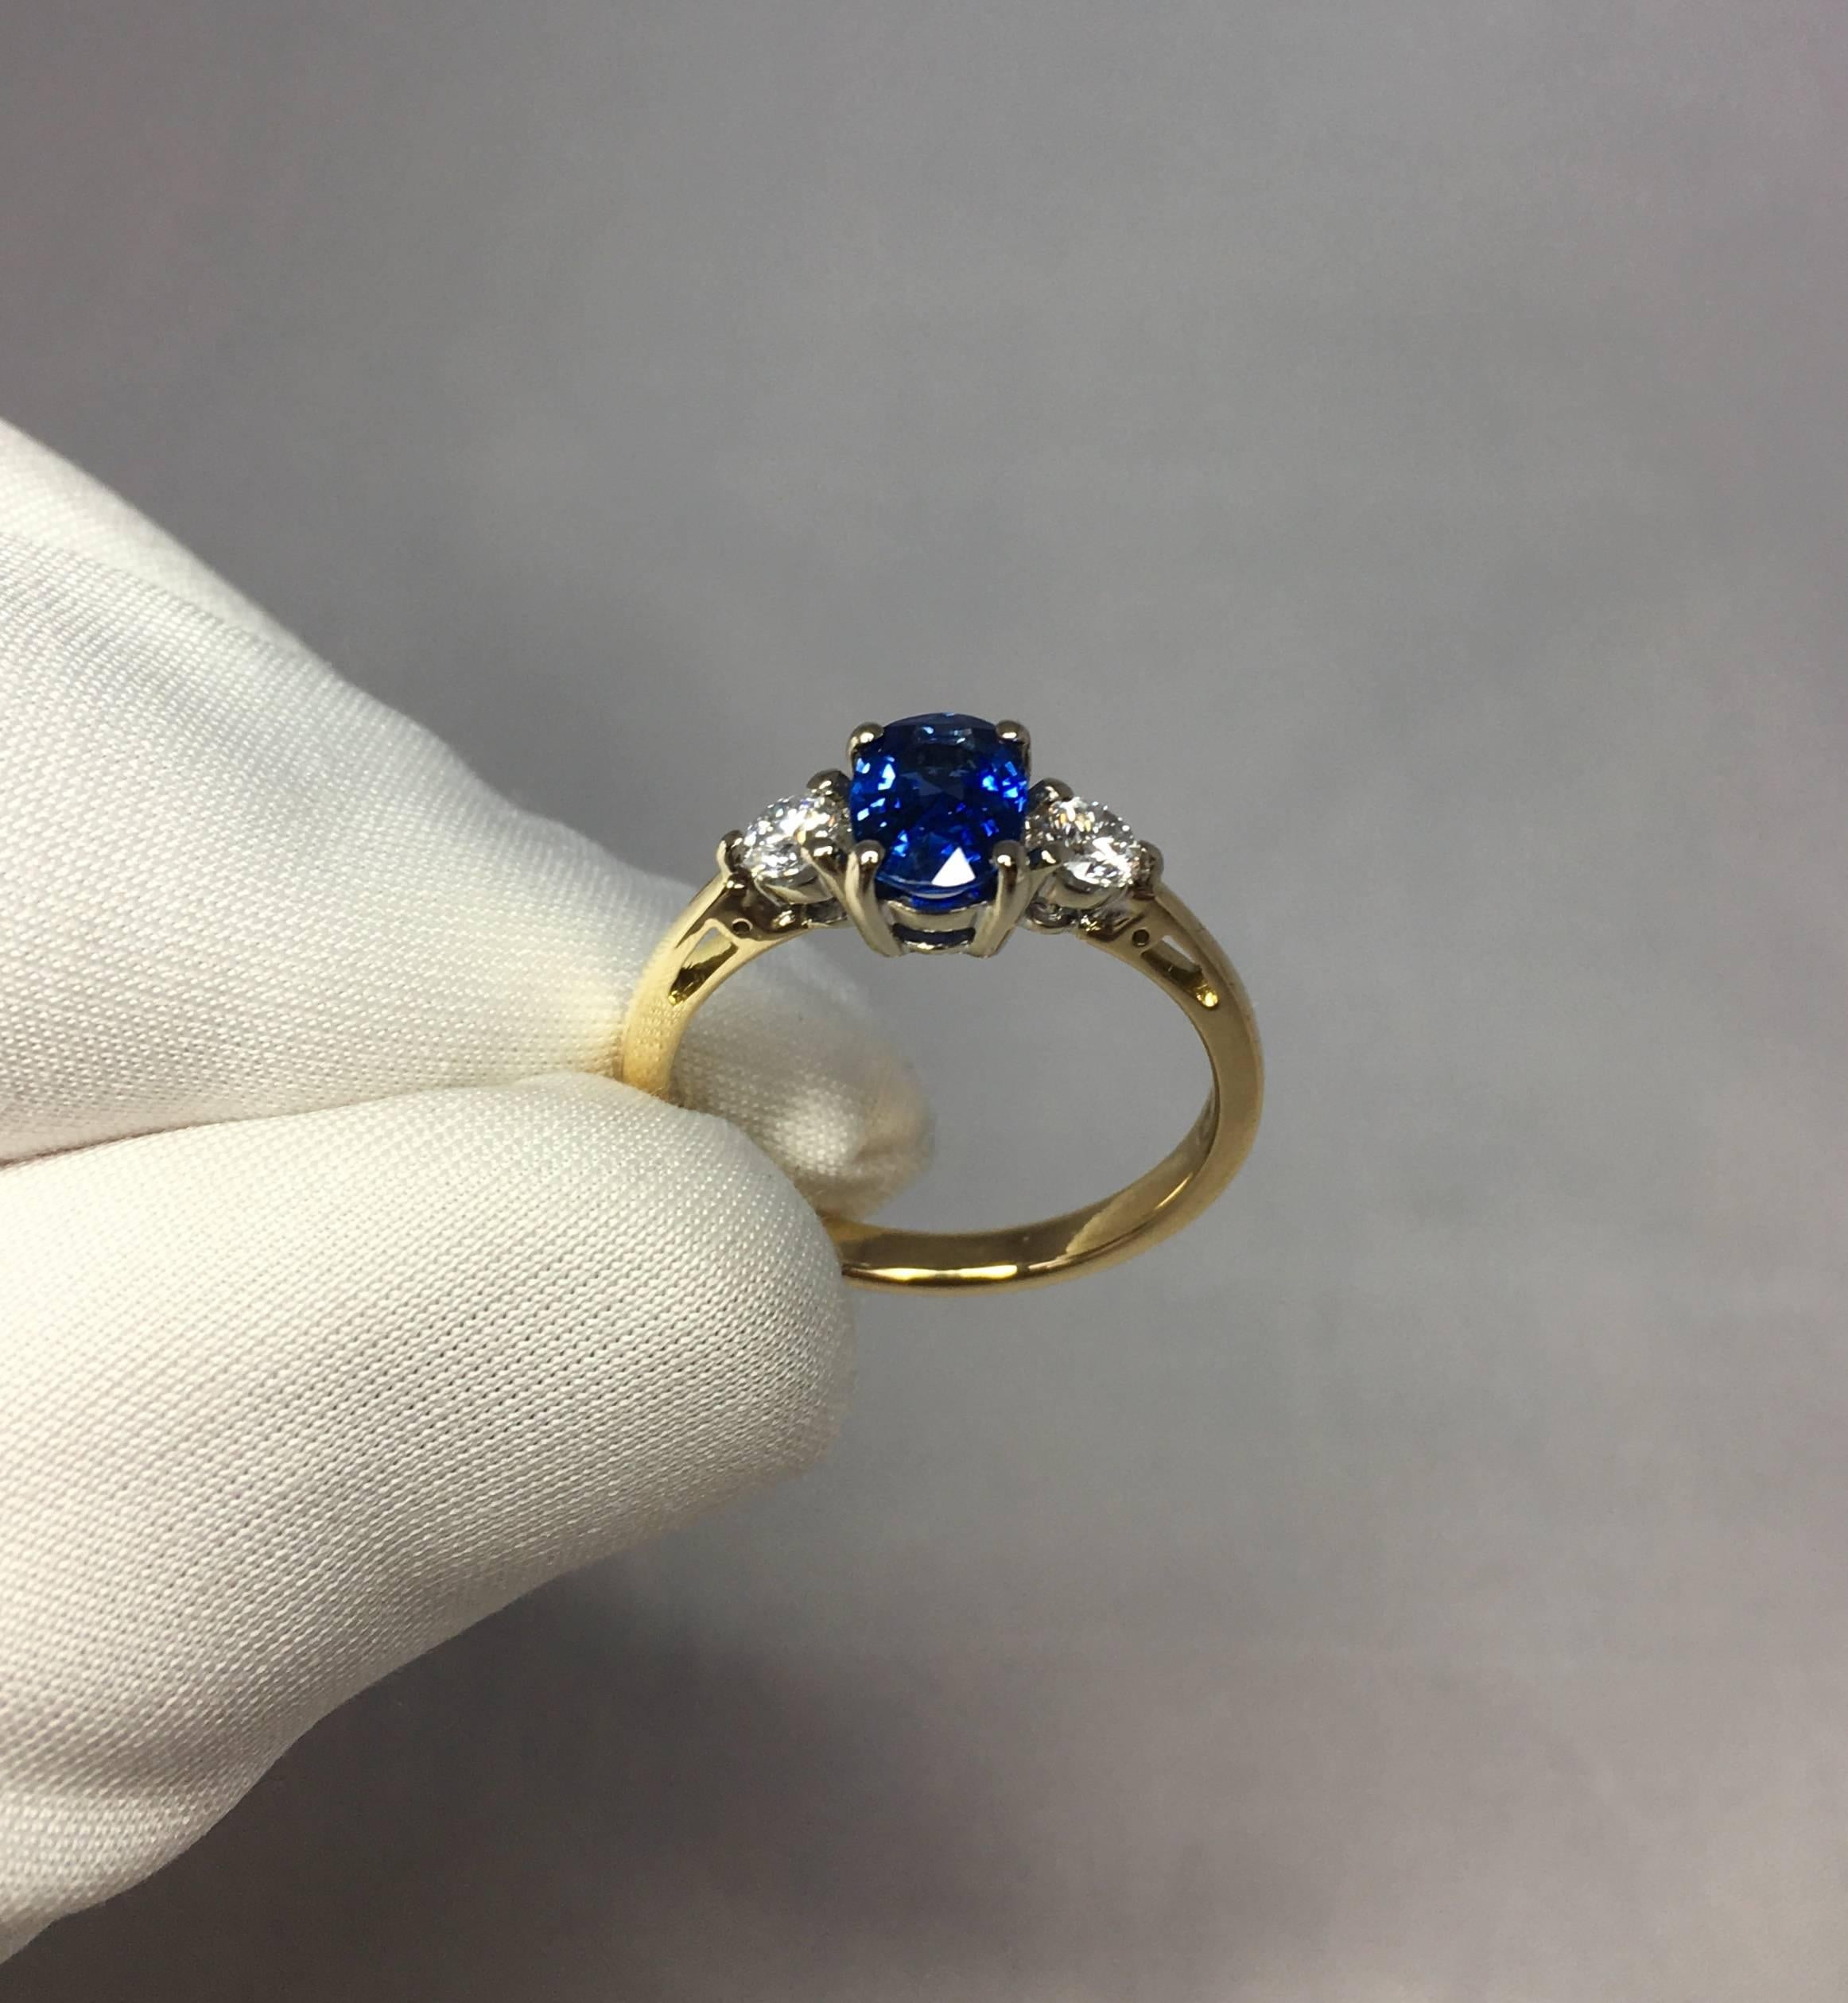 more classic color some news with transparency sapphire engagement a lovely of rings marry brilliant colored their blue the beauty at they gorgeous comes because earth aquamarine diamonds possibly or breathtaking